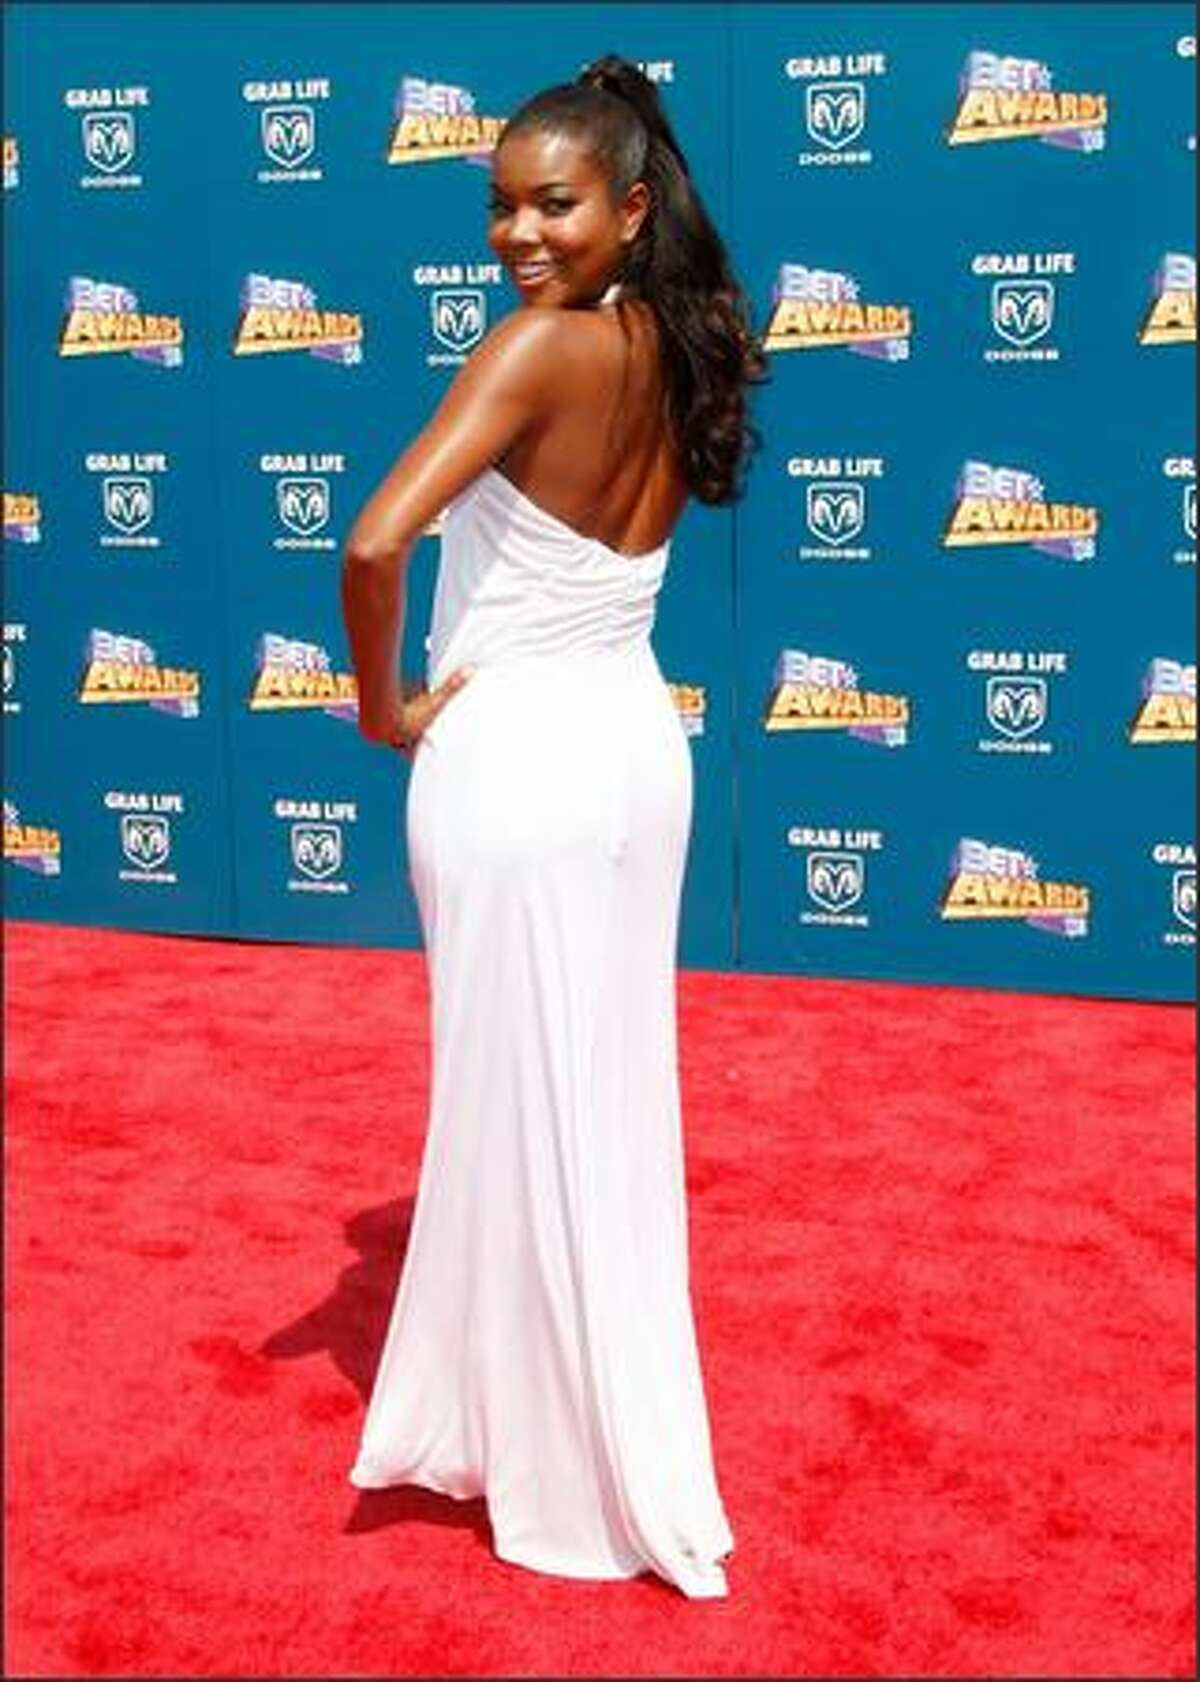 Actress Gabrielle Union arrives at the 2008 BET Awards held at the Shrine Auditorium in Los Angeles on Tuesday.